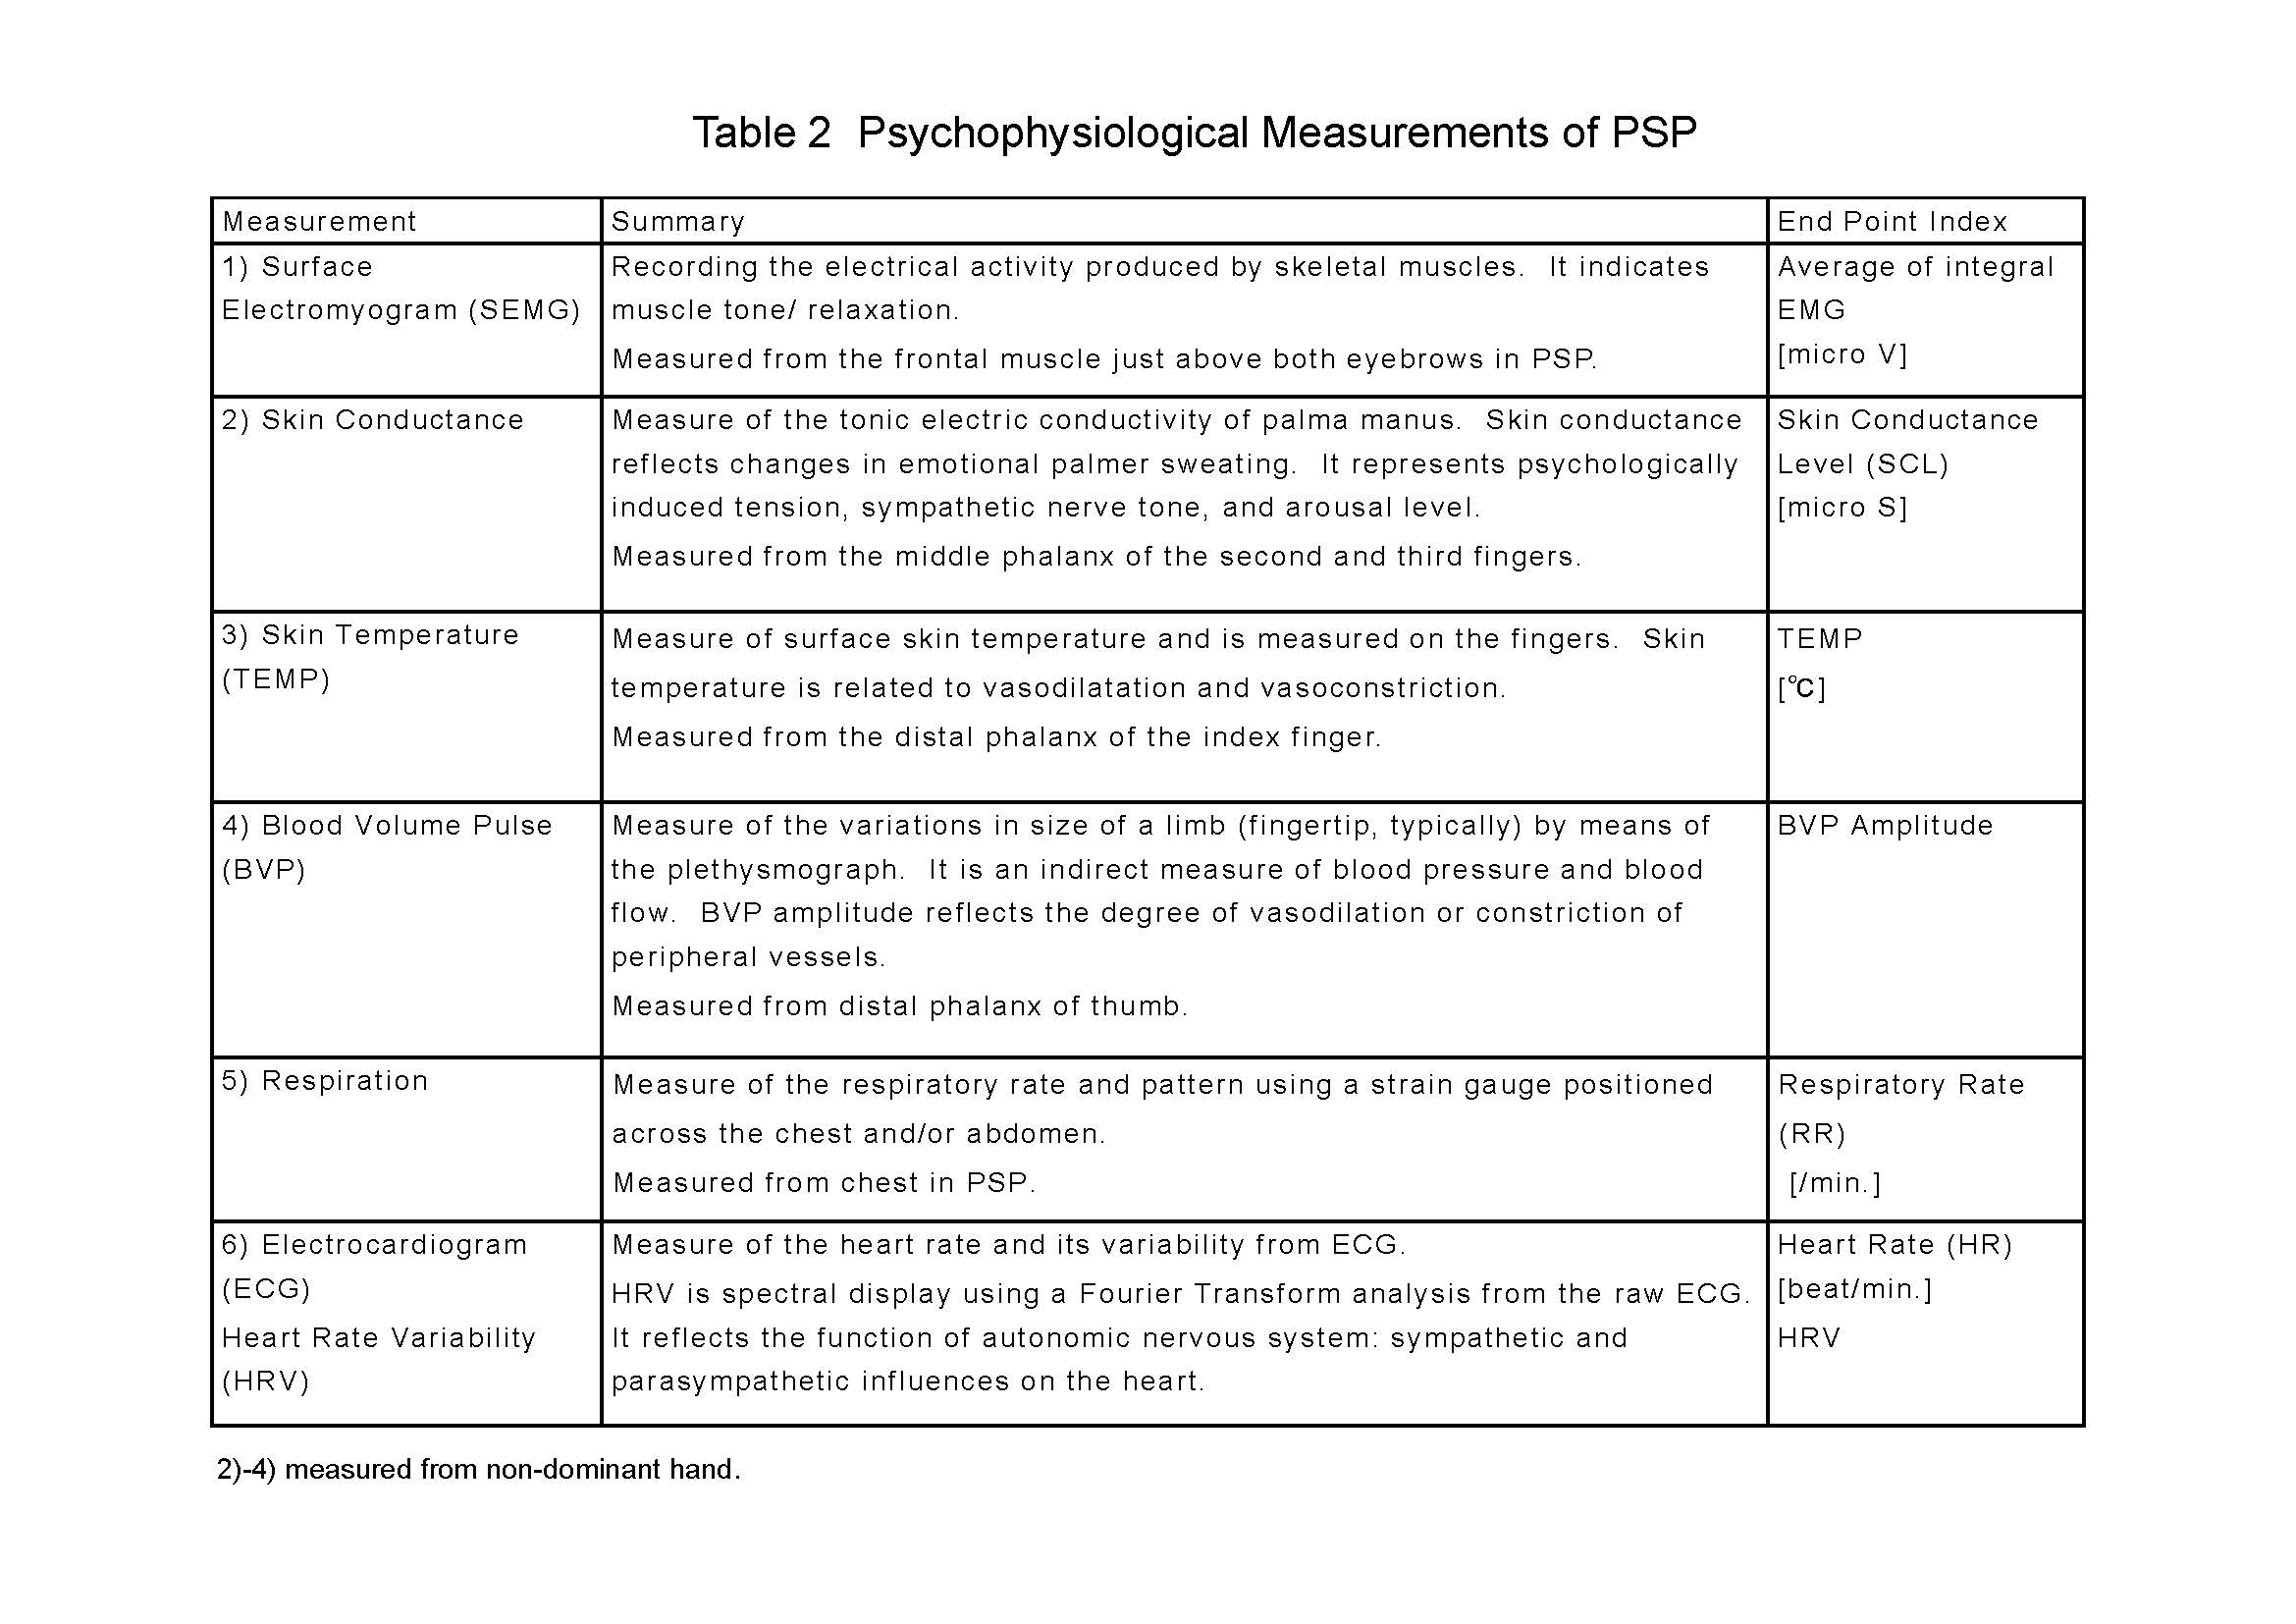 Table2_PSPMeasurements.jpg